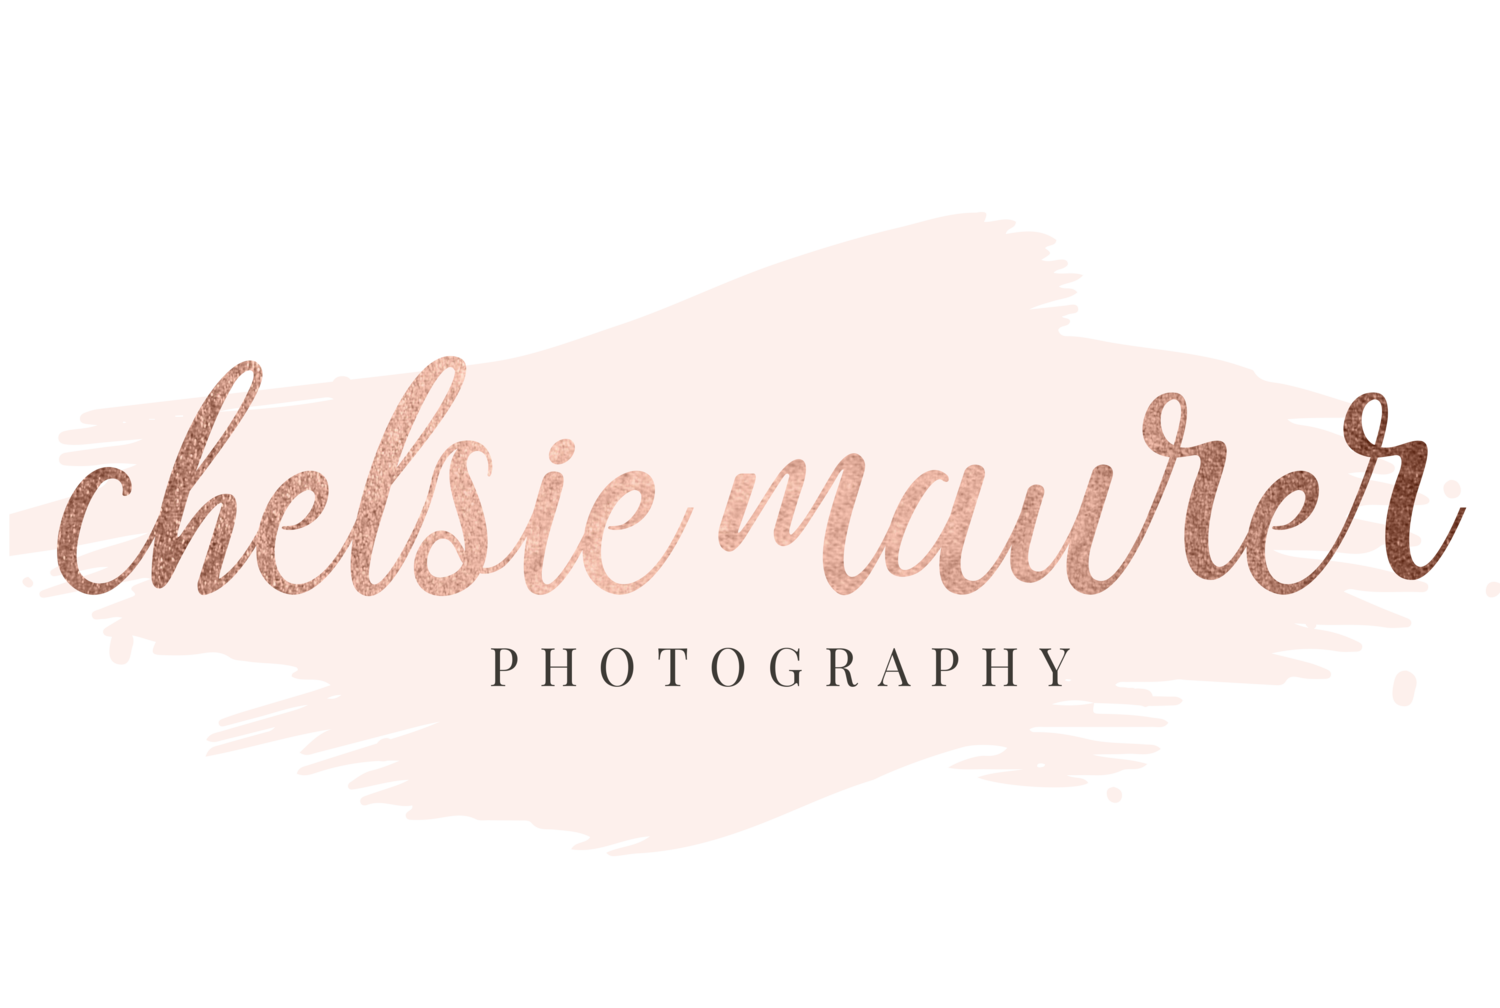 Chelsie Maurer Photography